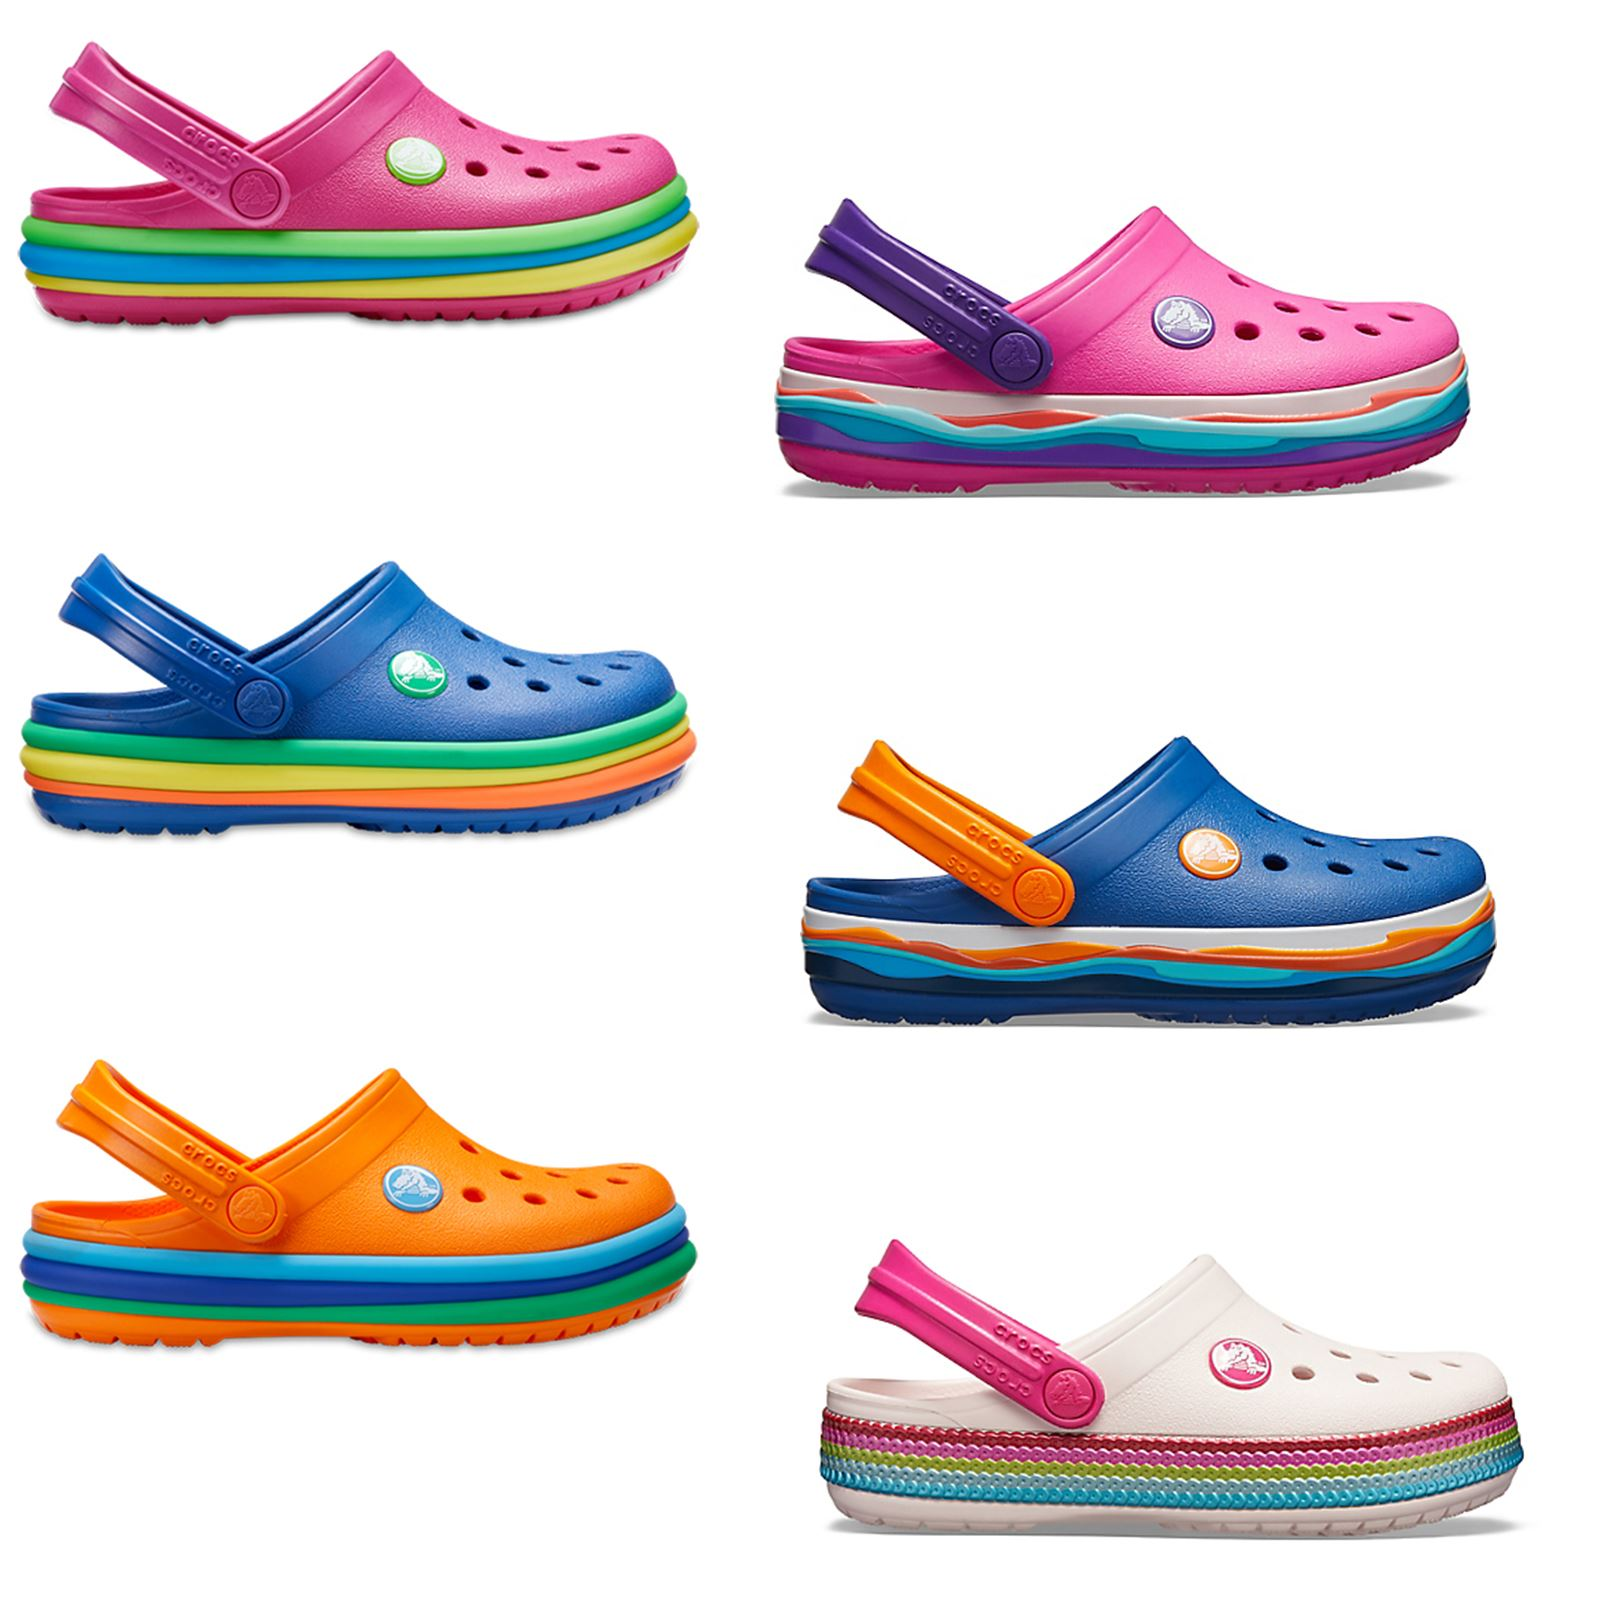 official photos ba5ee 053ae Crocs Kinder Crocband Regenbogen Gewellt Pailletten Relaxed Fit Clogs Rosa  Blau | eBay